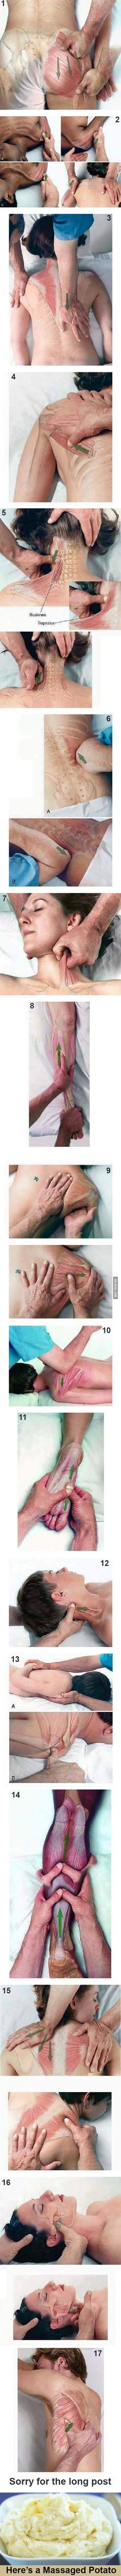 How to give a great massage - 9GAG                                                                                                                                                                                 More